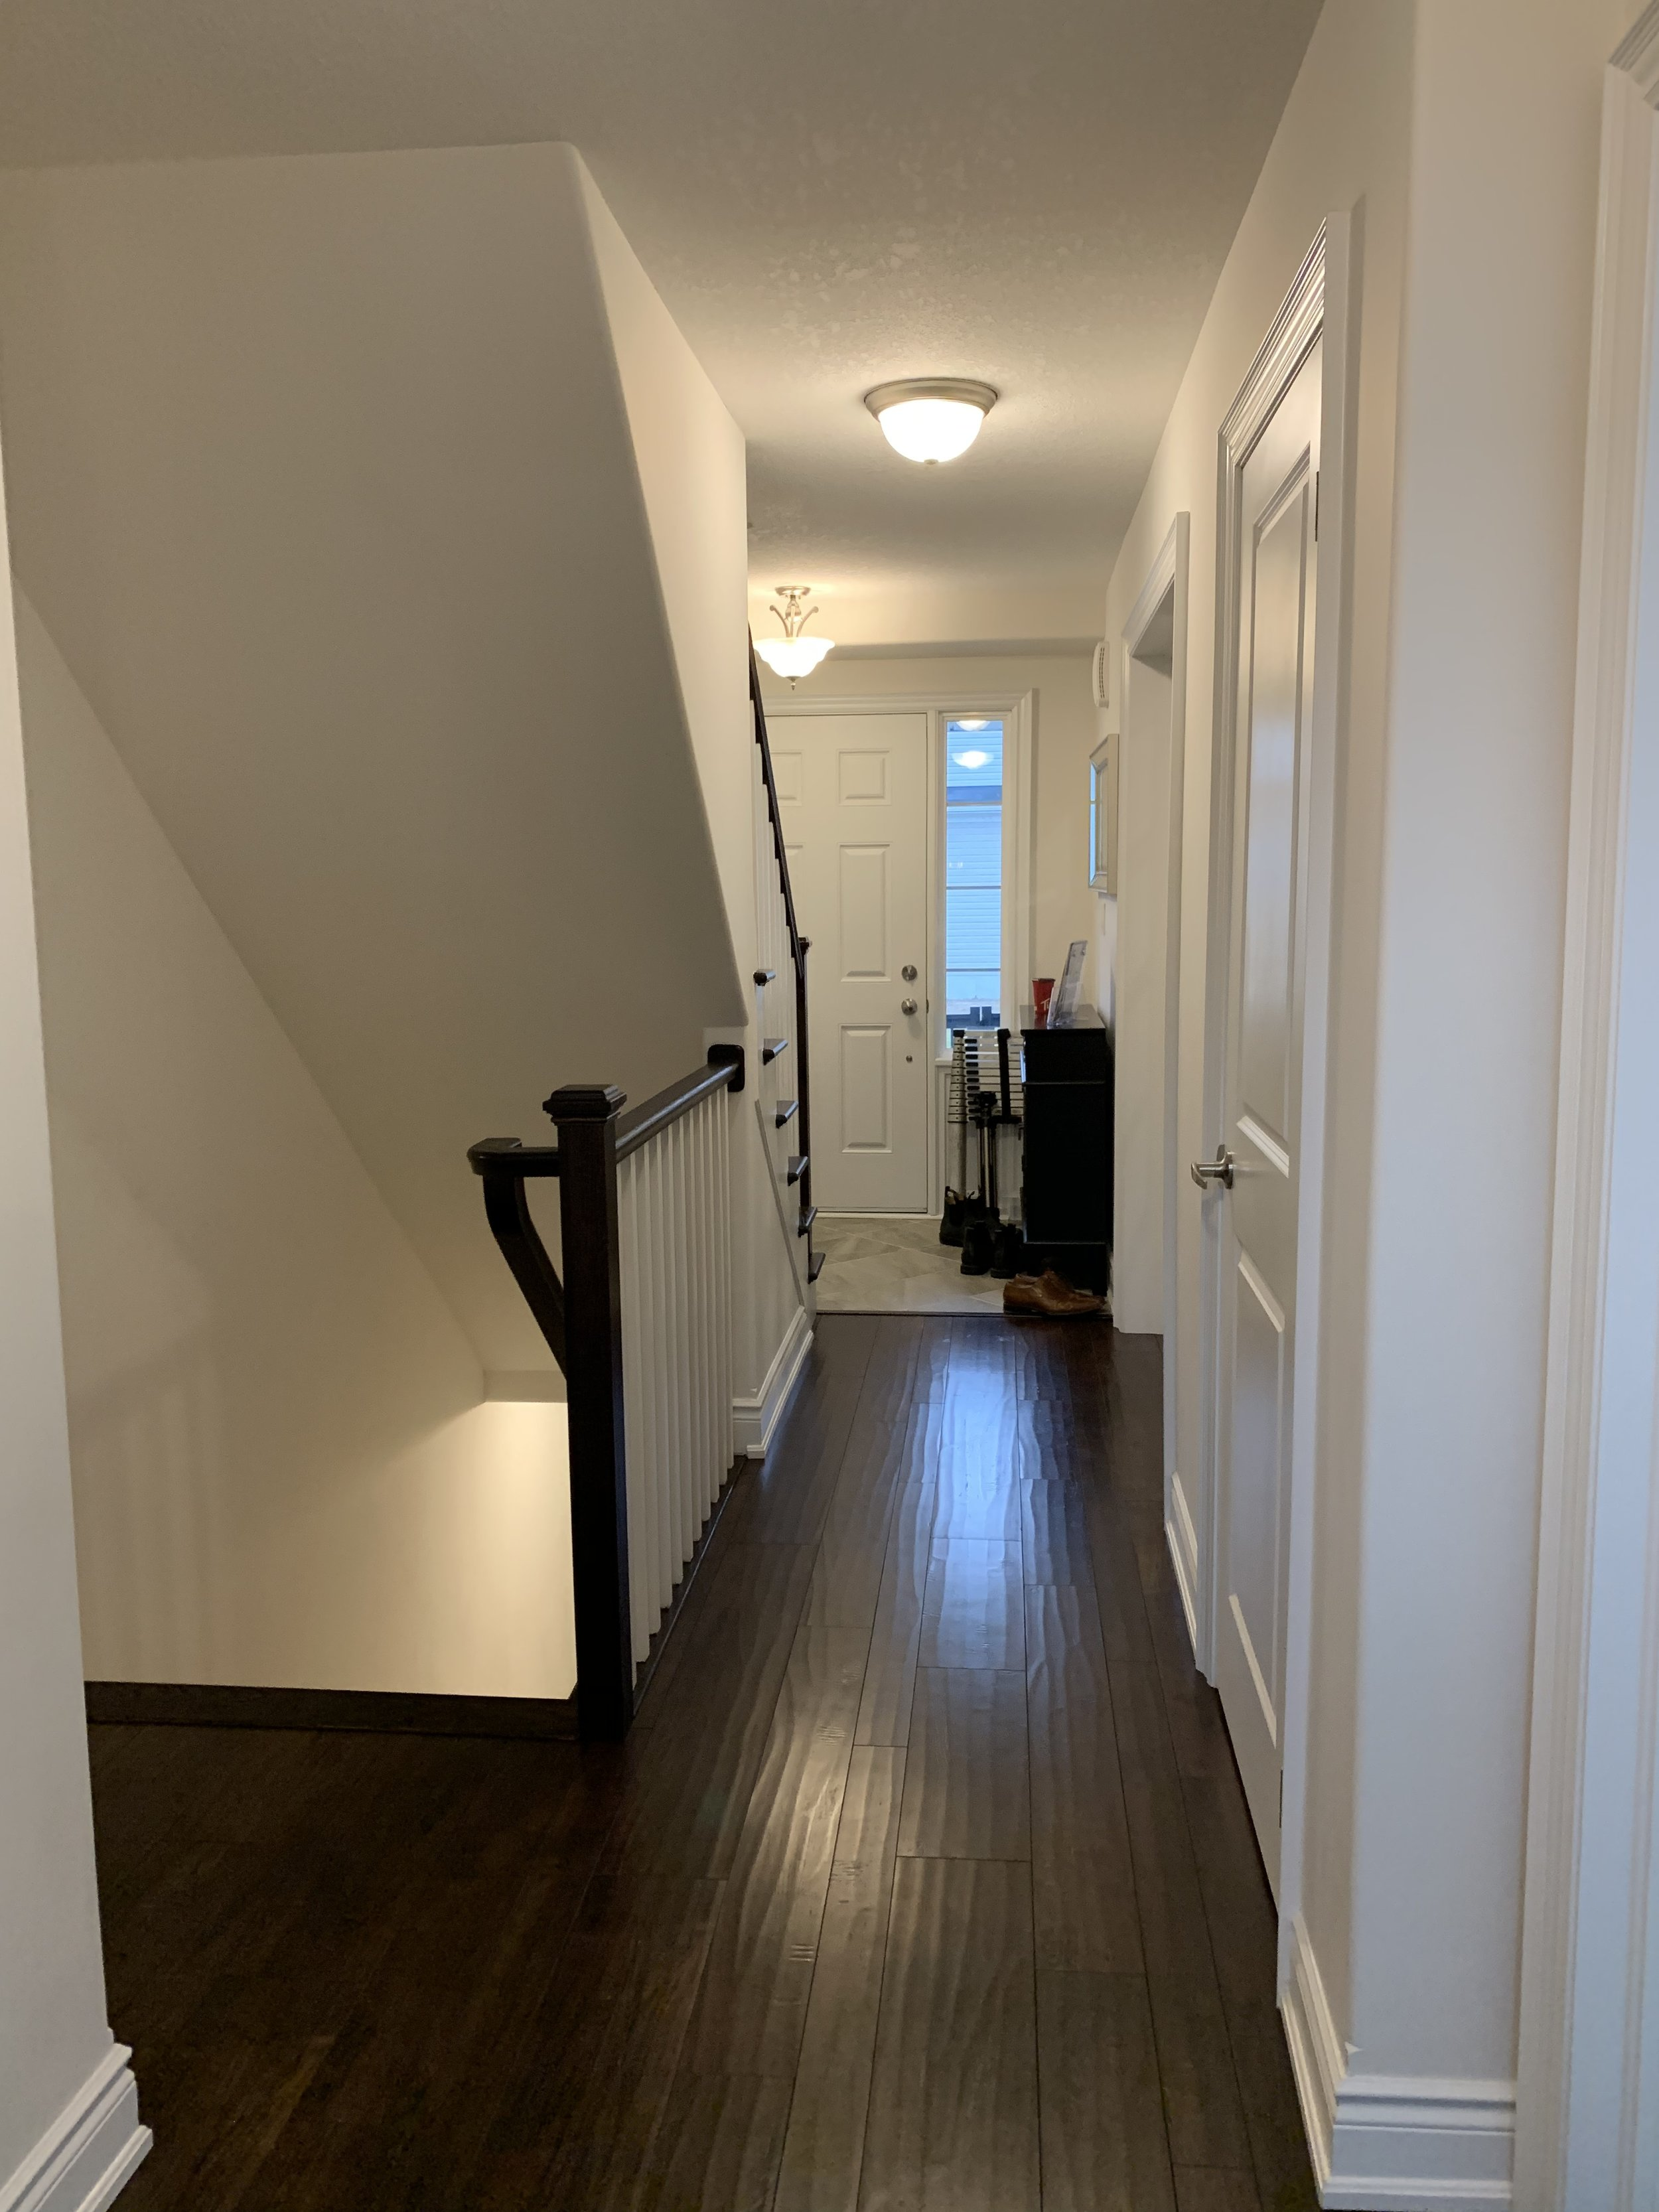 Hallway leading from kitchen to entryway/front door - Before